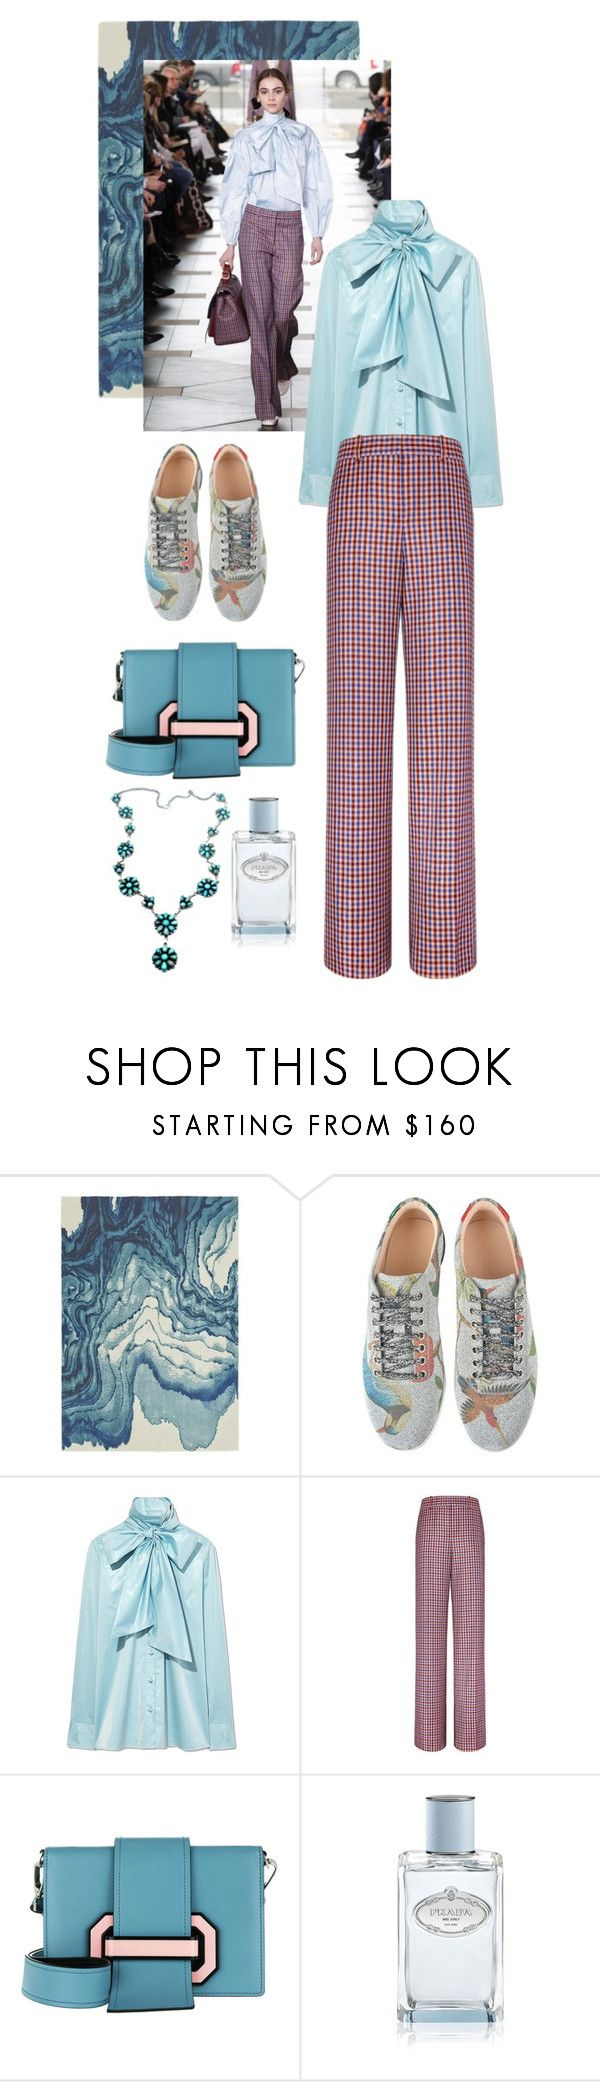 """Runway Look"" by cherieaustin on Polyvore featuring Blue Area, Tory Burch, Gucci, Prada and Child Of Wild"